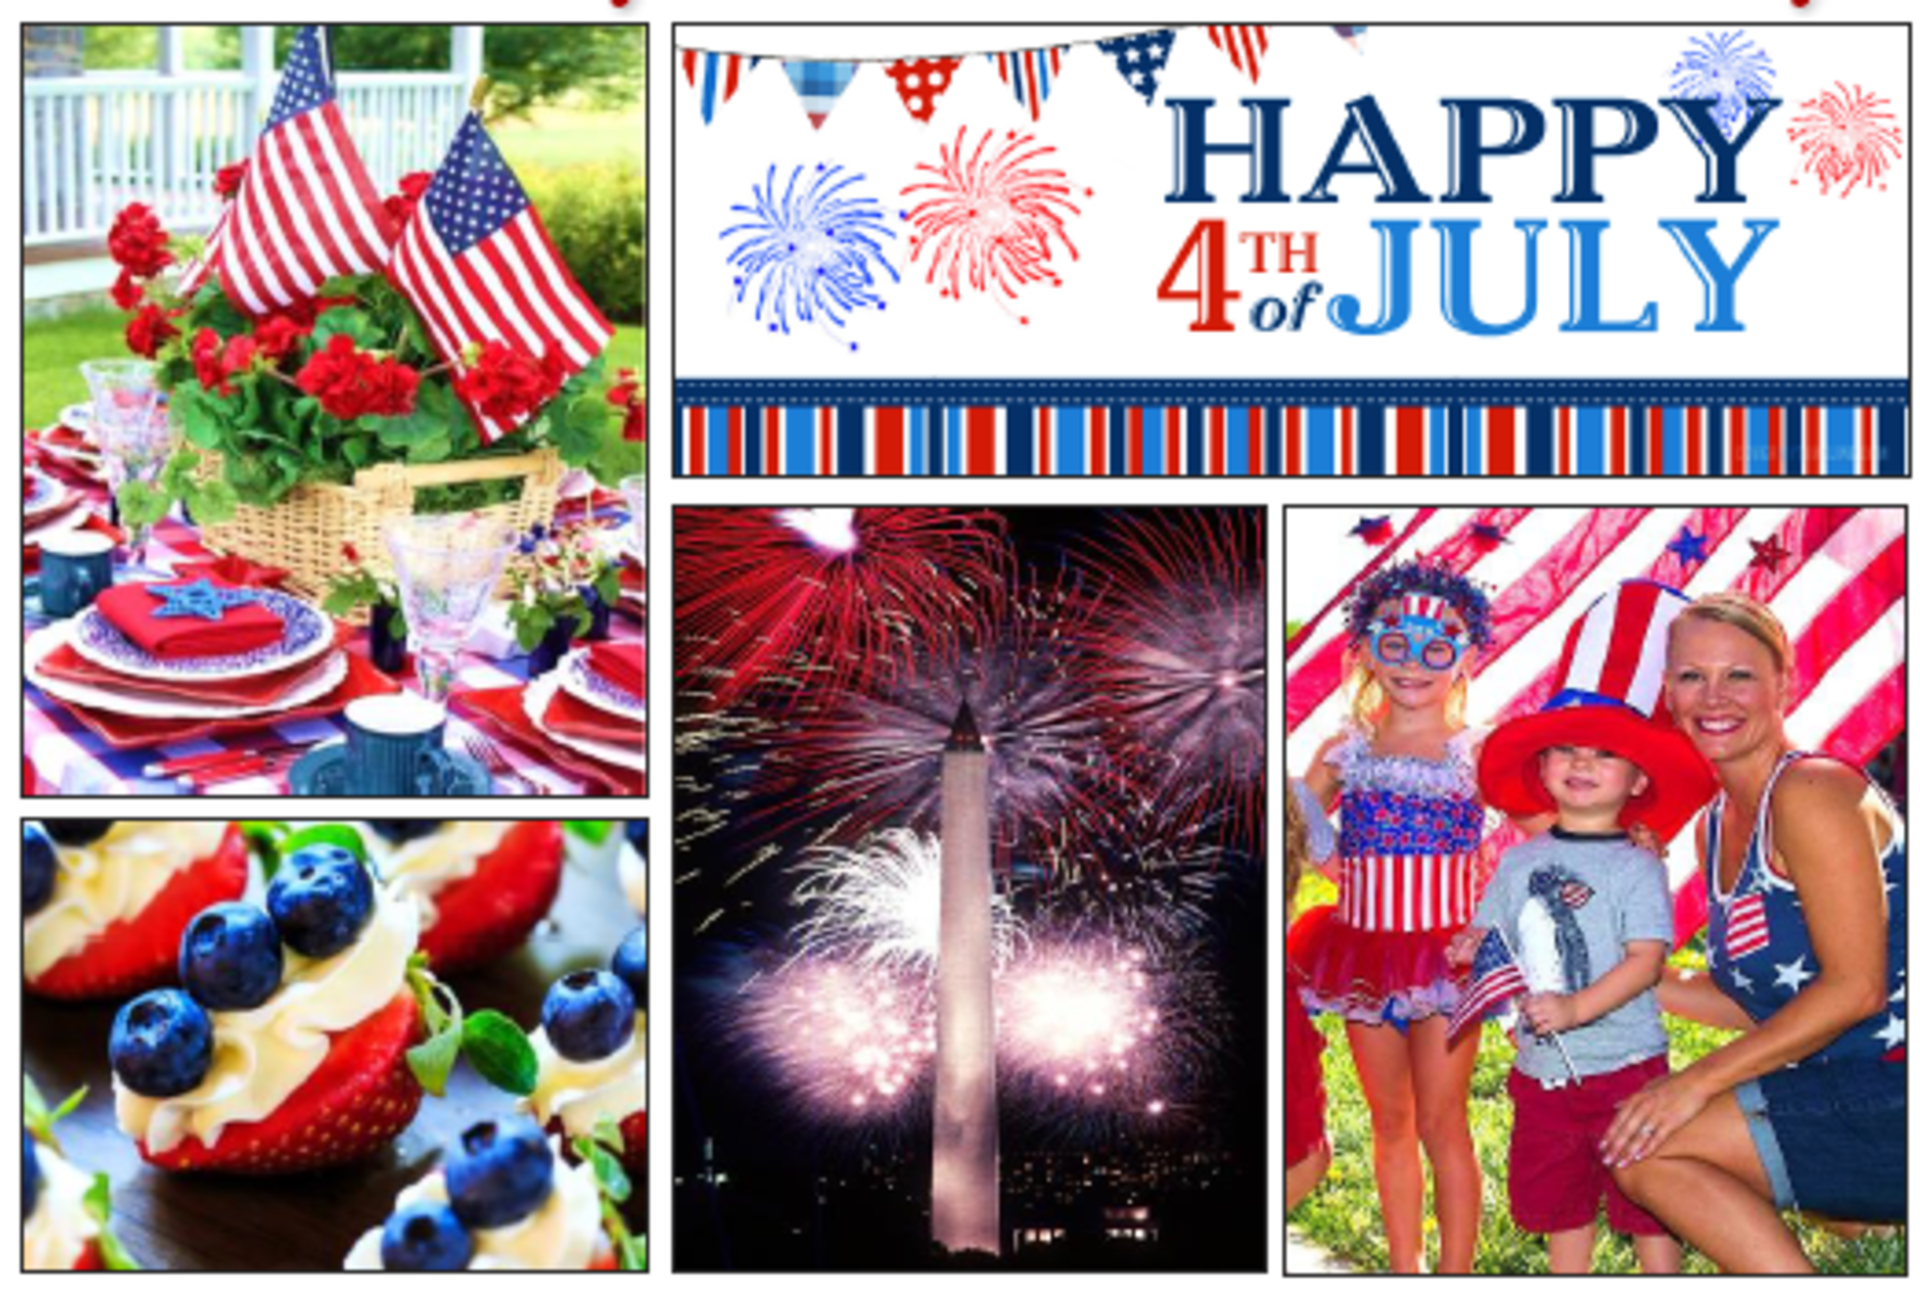 Schulien and Associates' Weekend Guide (2018 July 4th Edition)